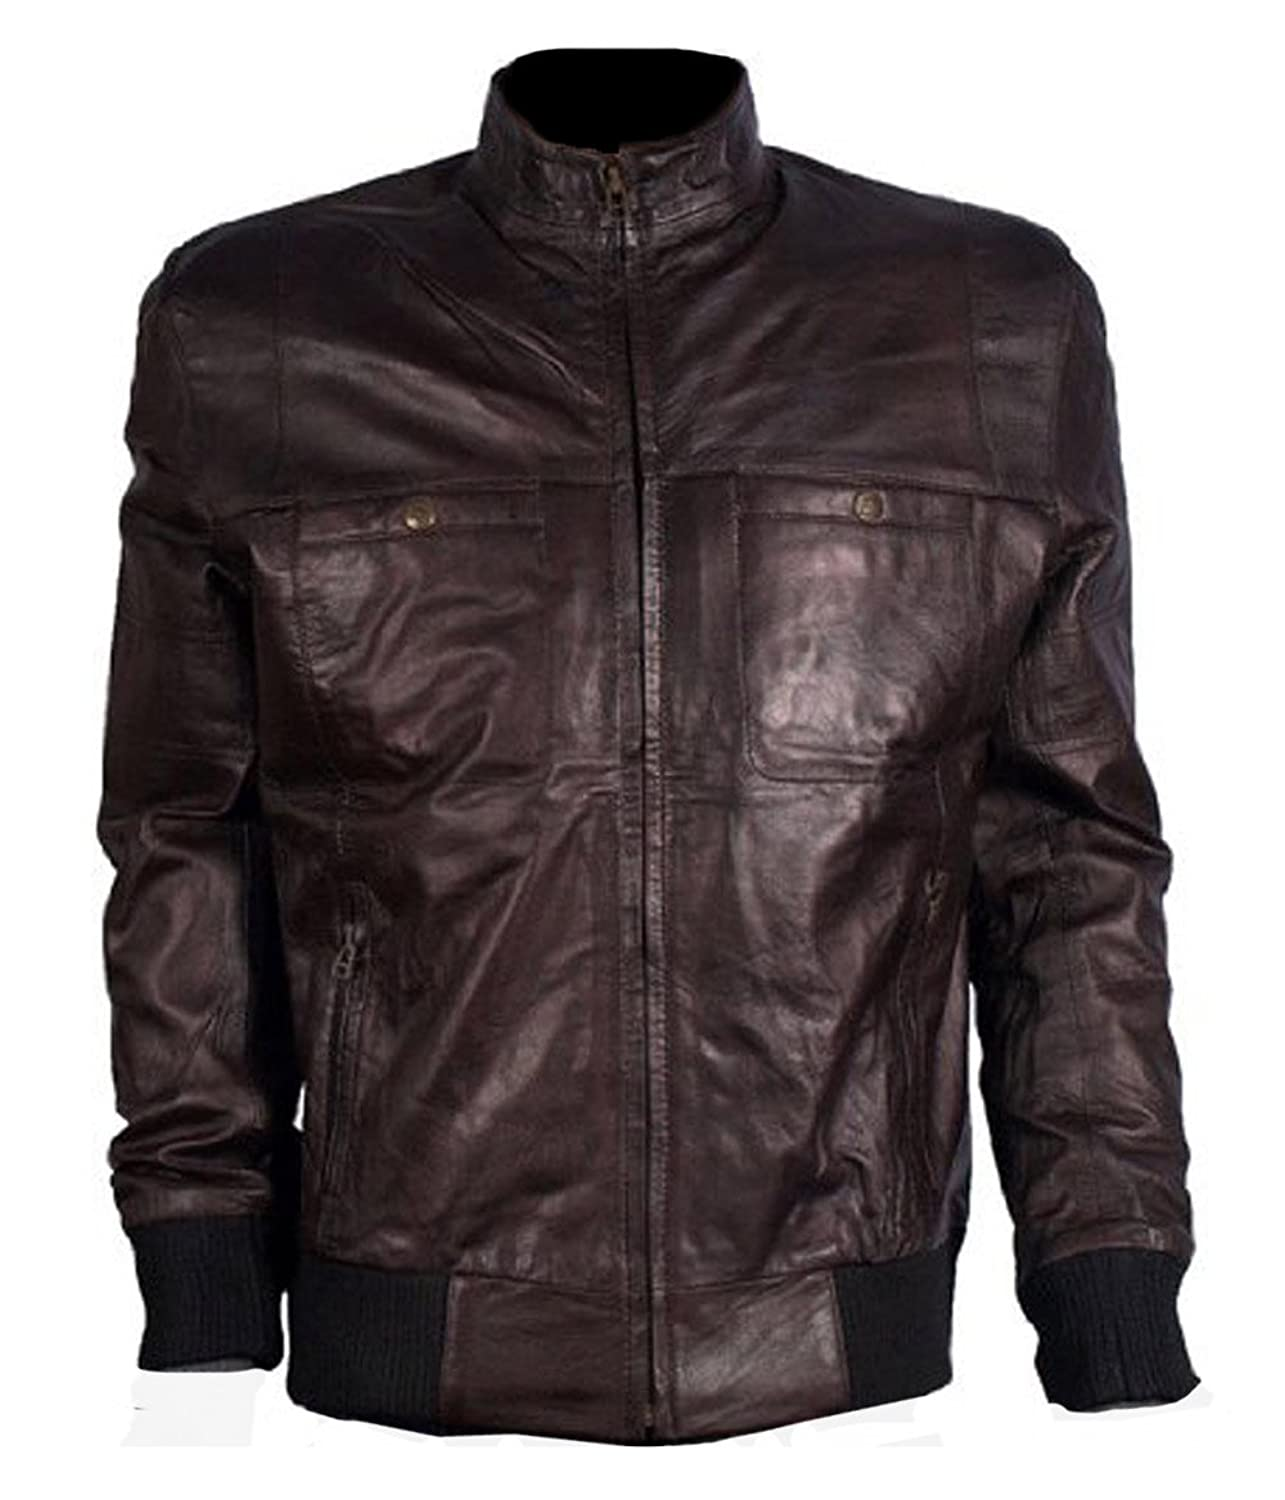 Mens faux leather jacket=SUNSHINE= Available sizes, XS-5xl,